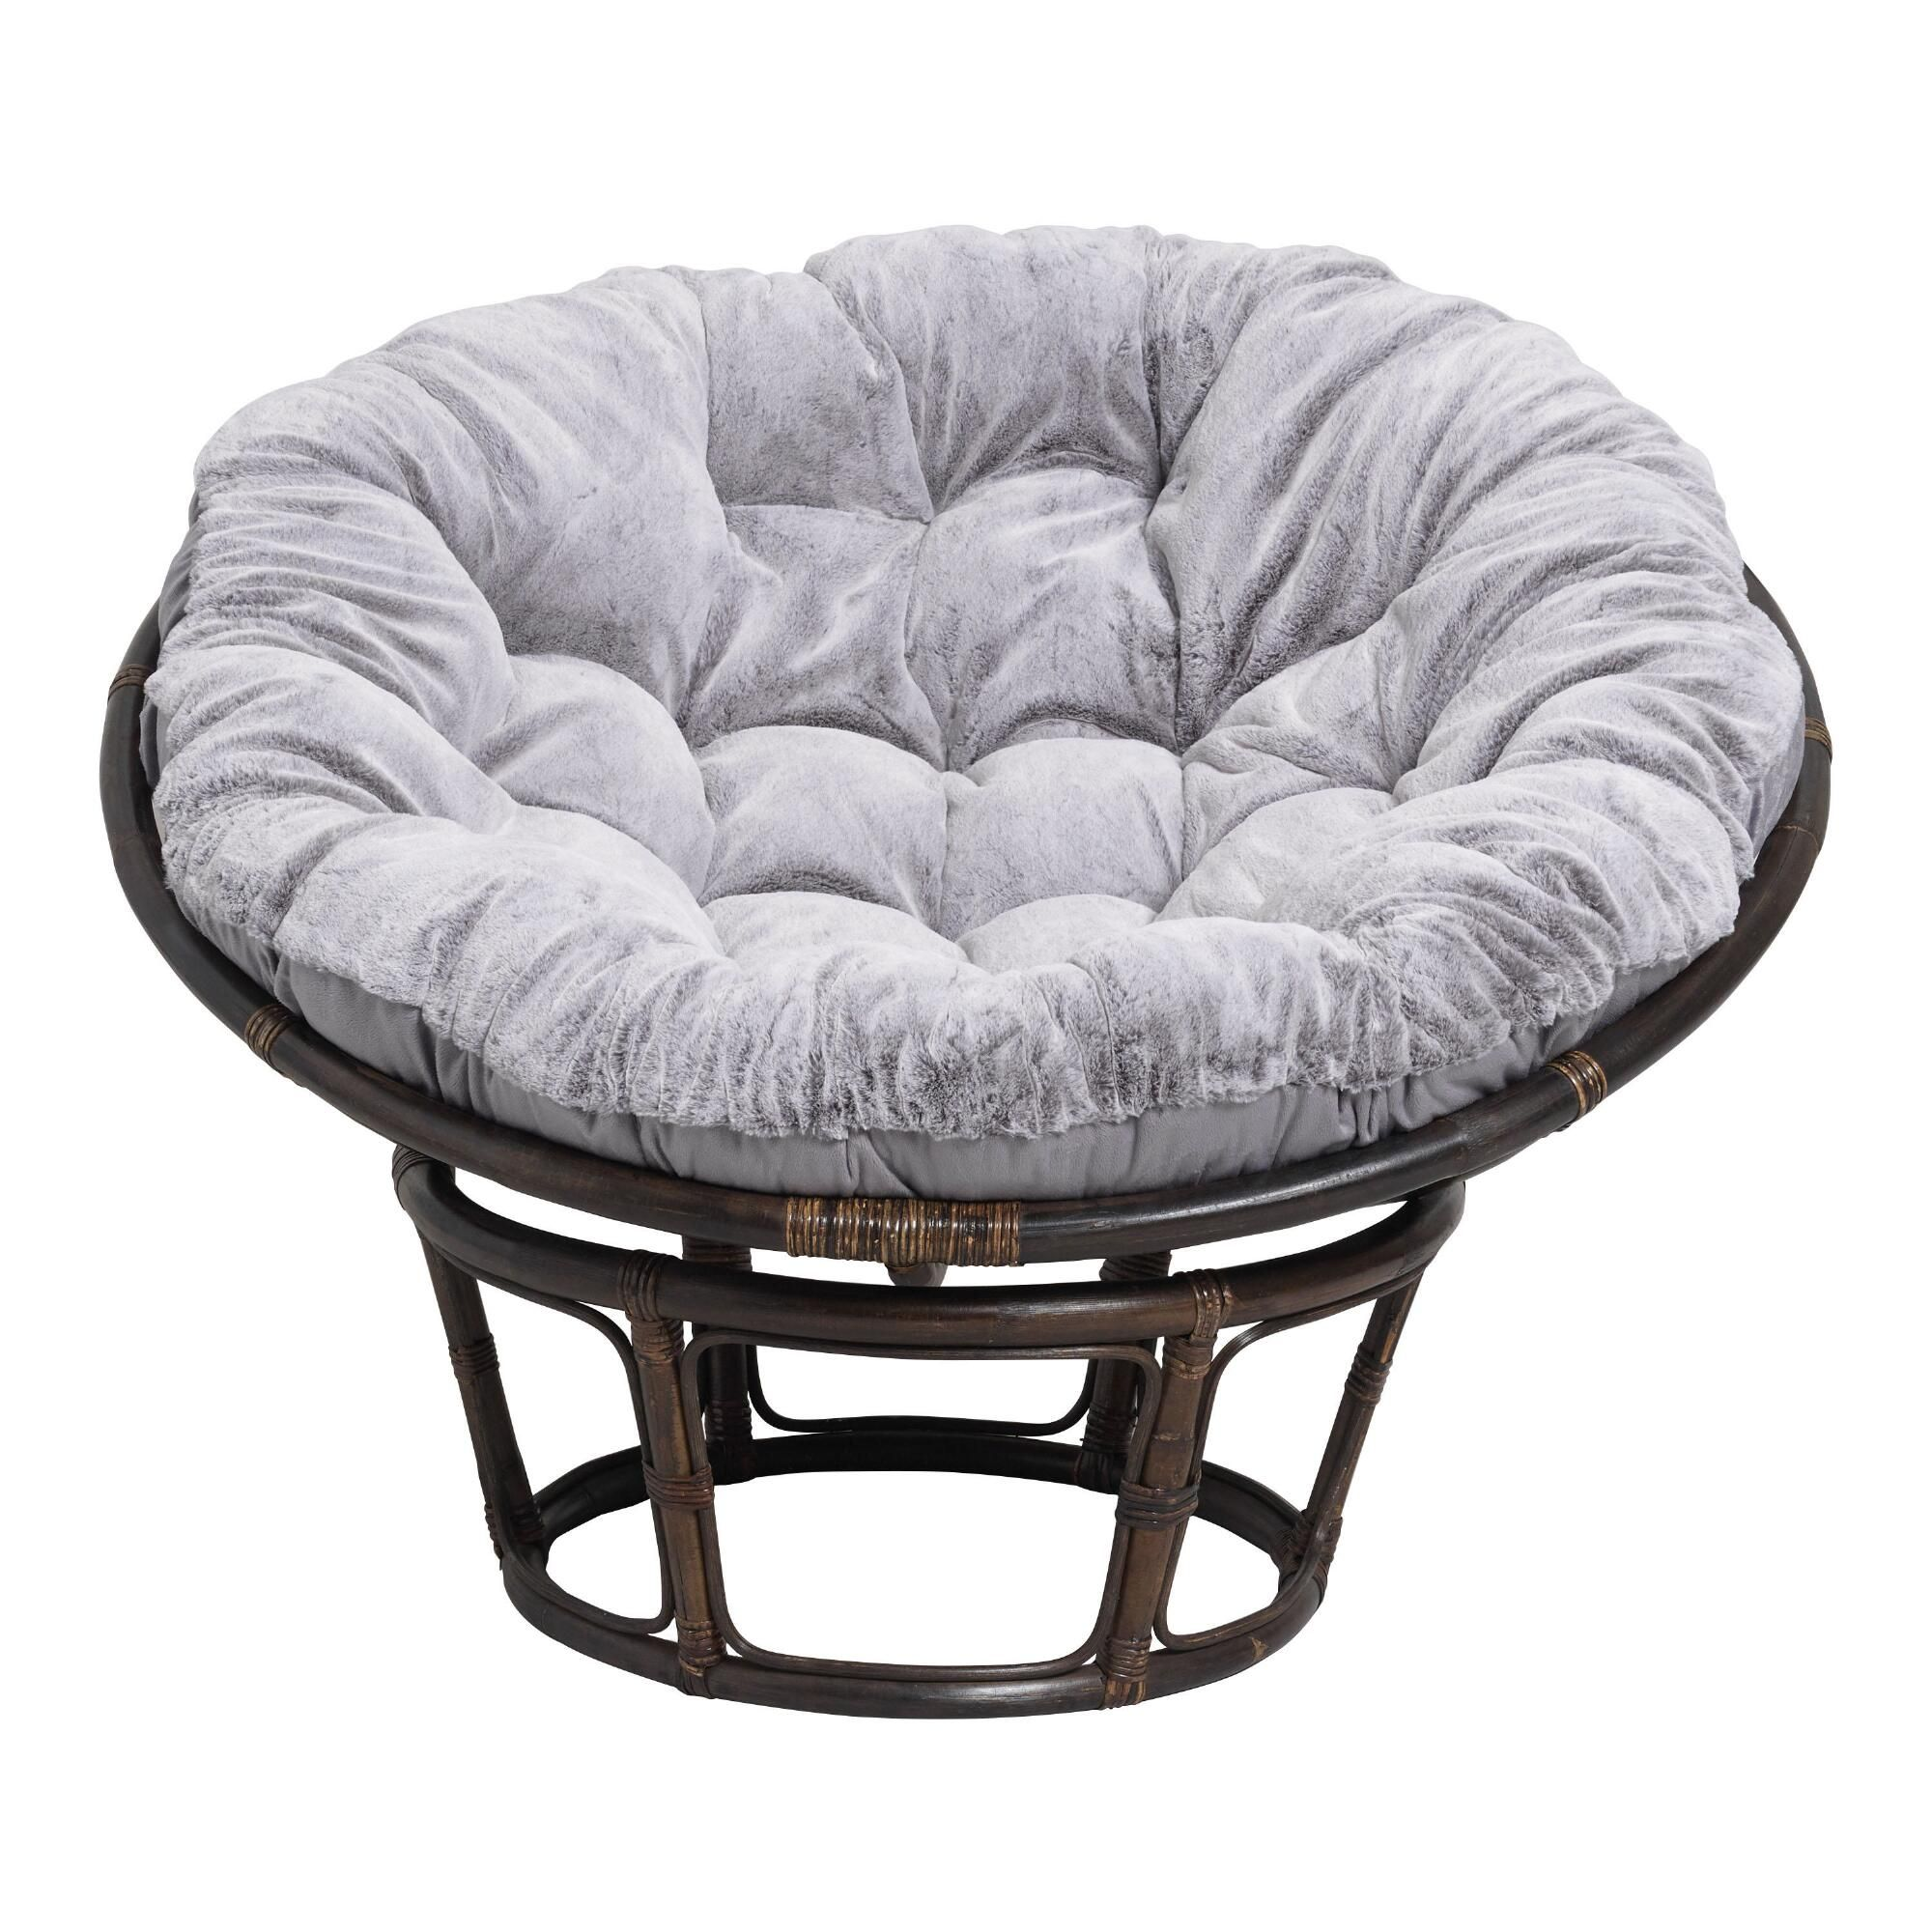 Gray Faux Fur Papasan Chair Cushion Papasan Chair Papasan Chair